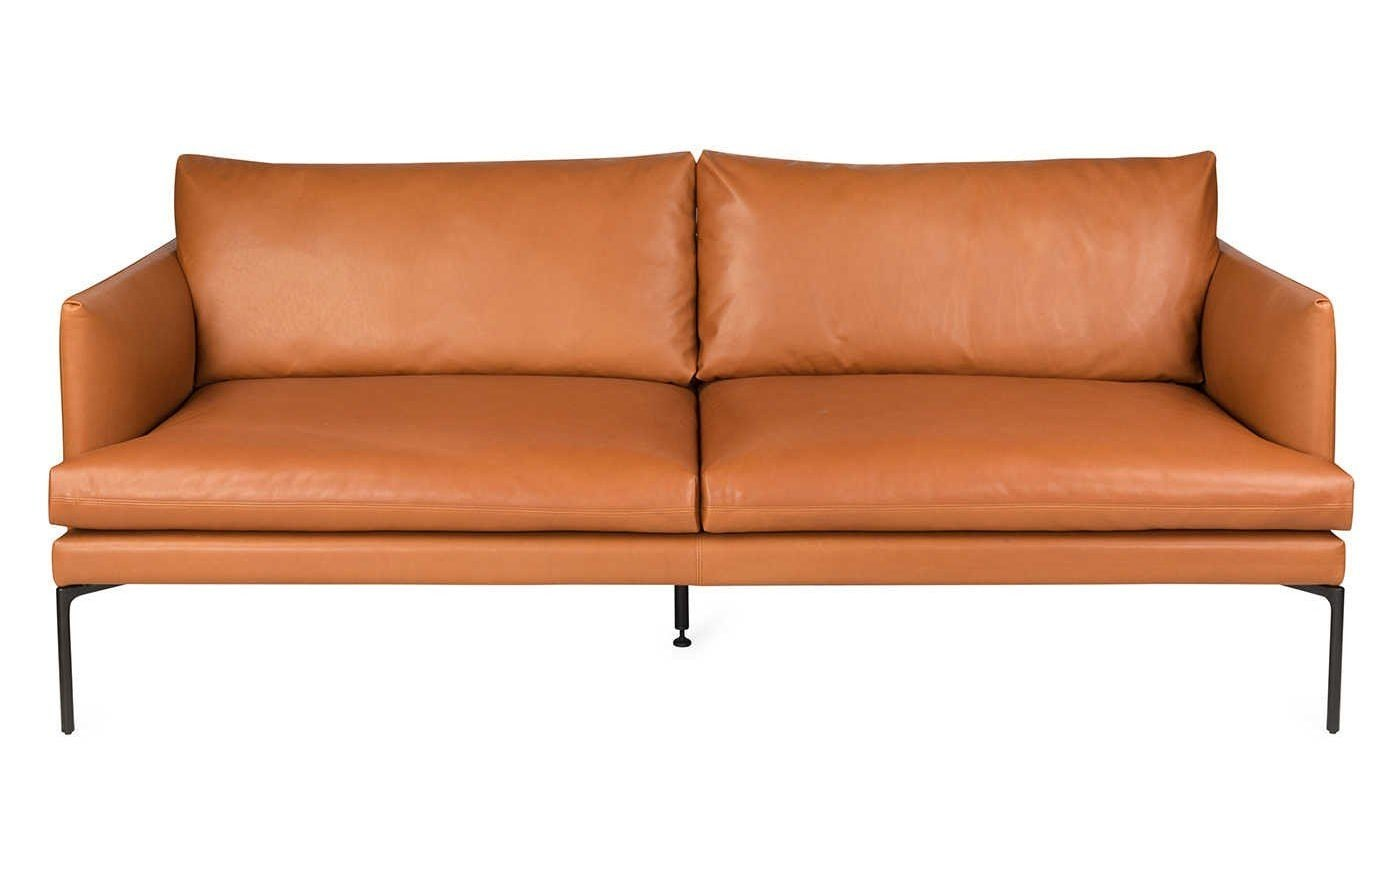 orange sofa uk love sofas 17 of the best and couches to buy for all budgets heal s leather